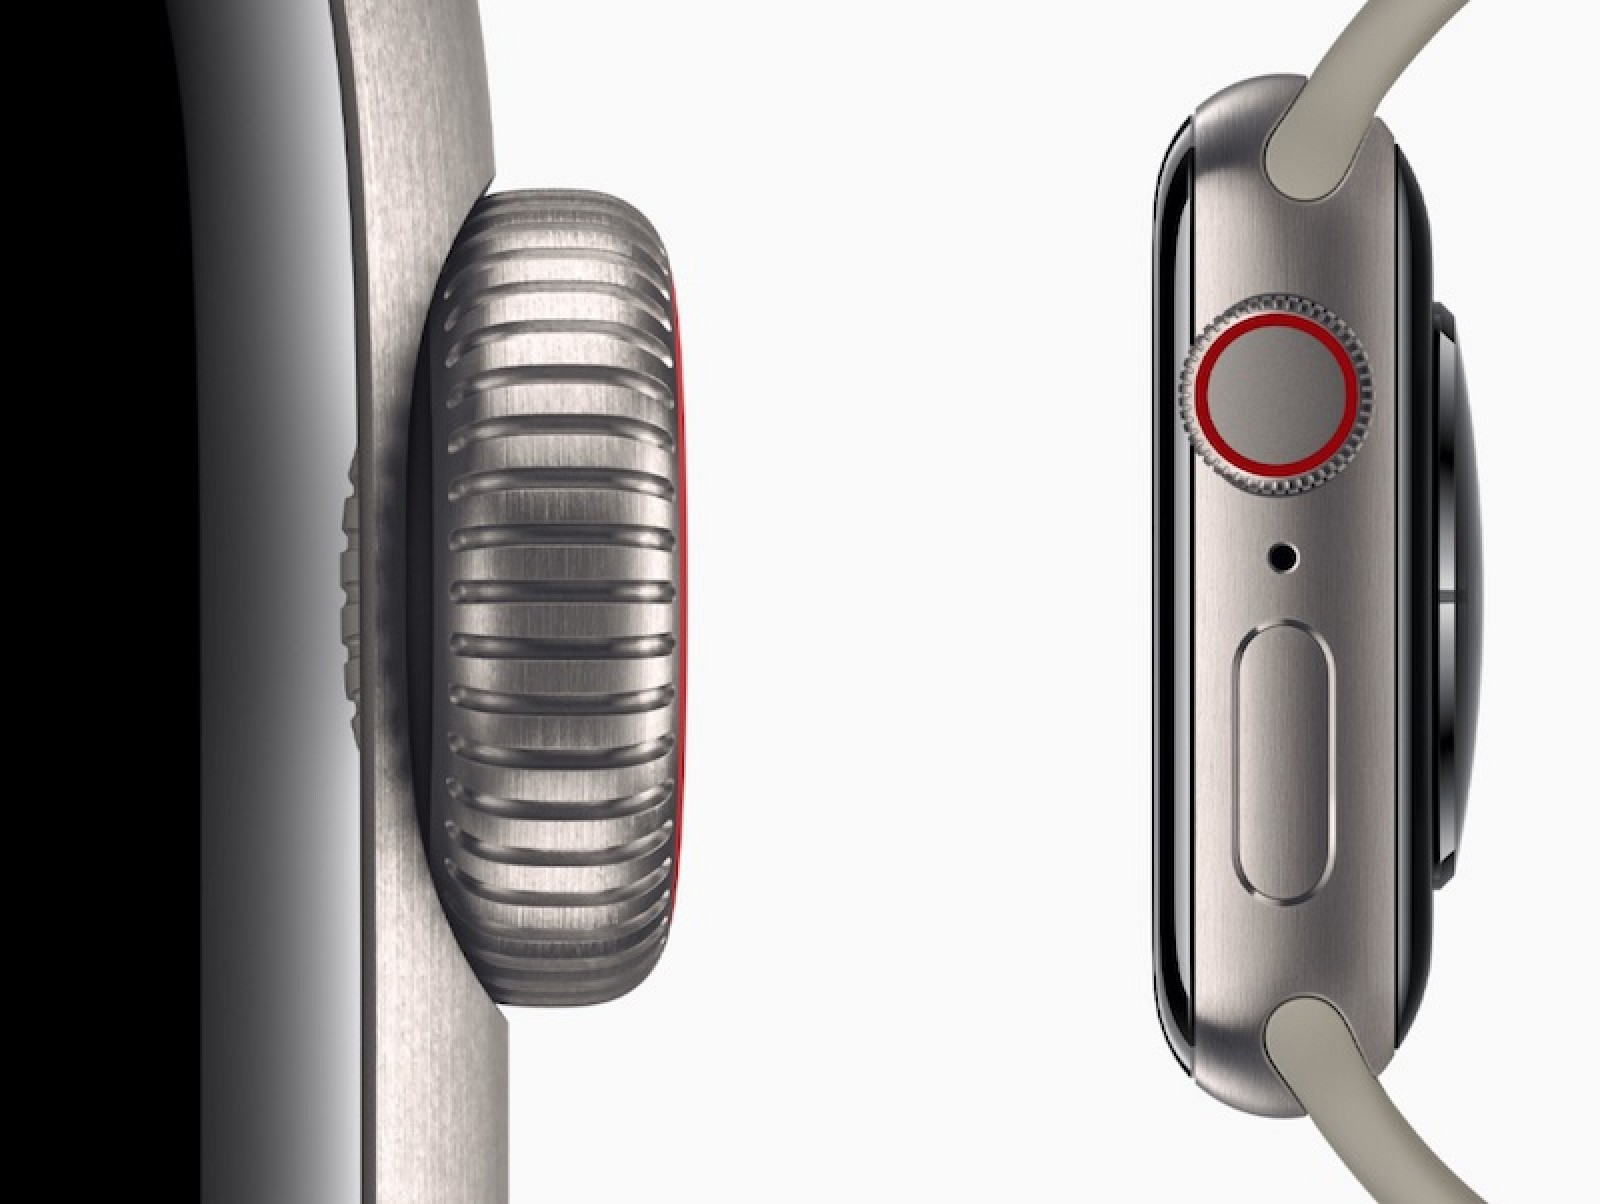 Apple Watch Series 5 Titanium Models Weigh Up to 13% Less Than Stainless Steel Models - Mac Rumors thumbnail